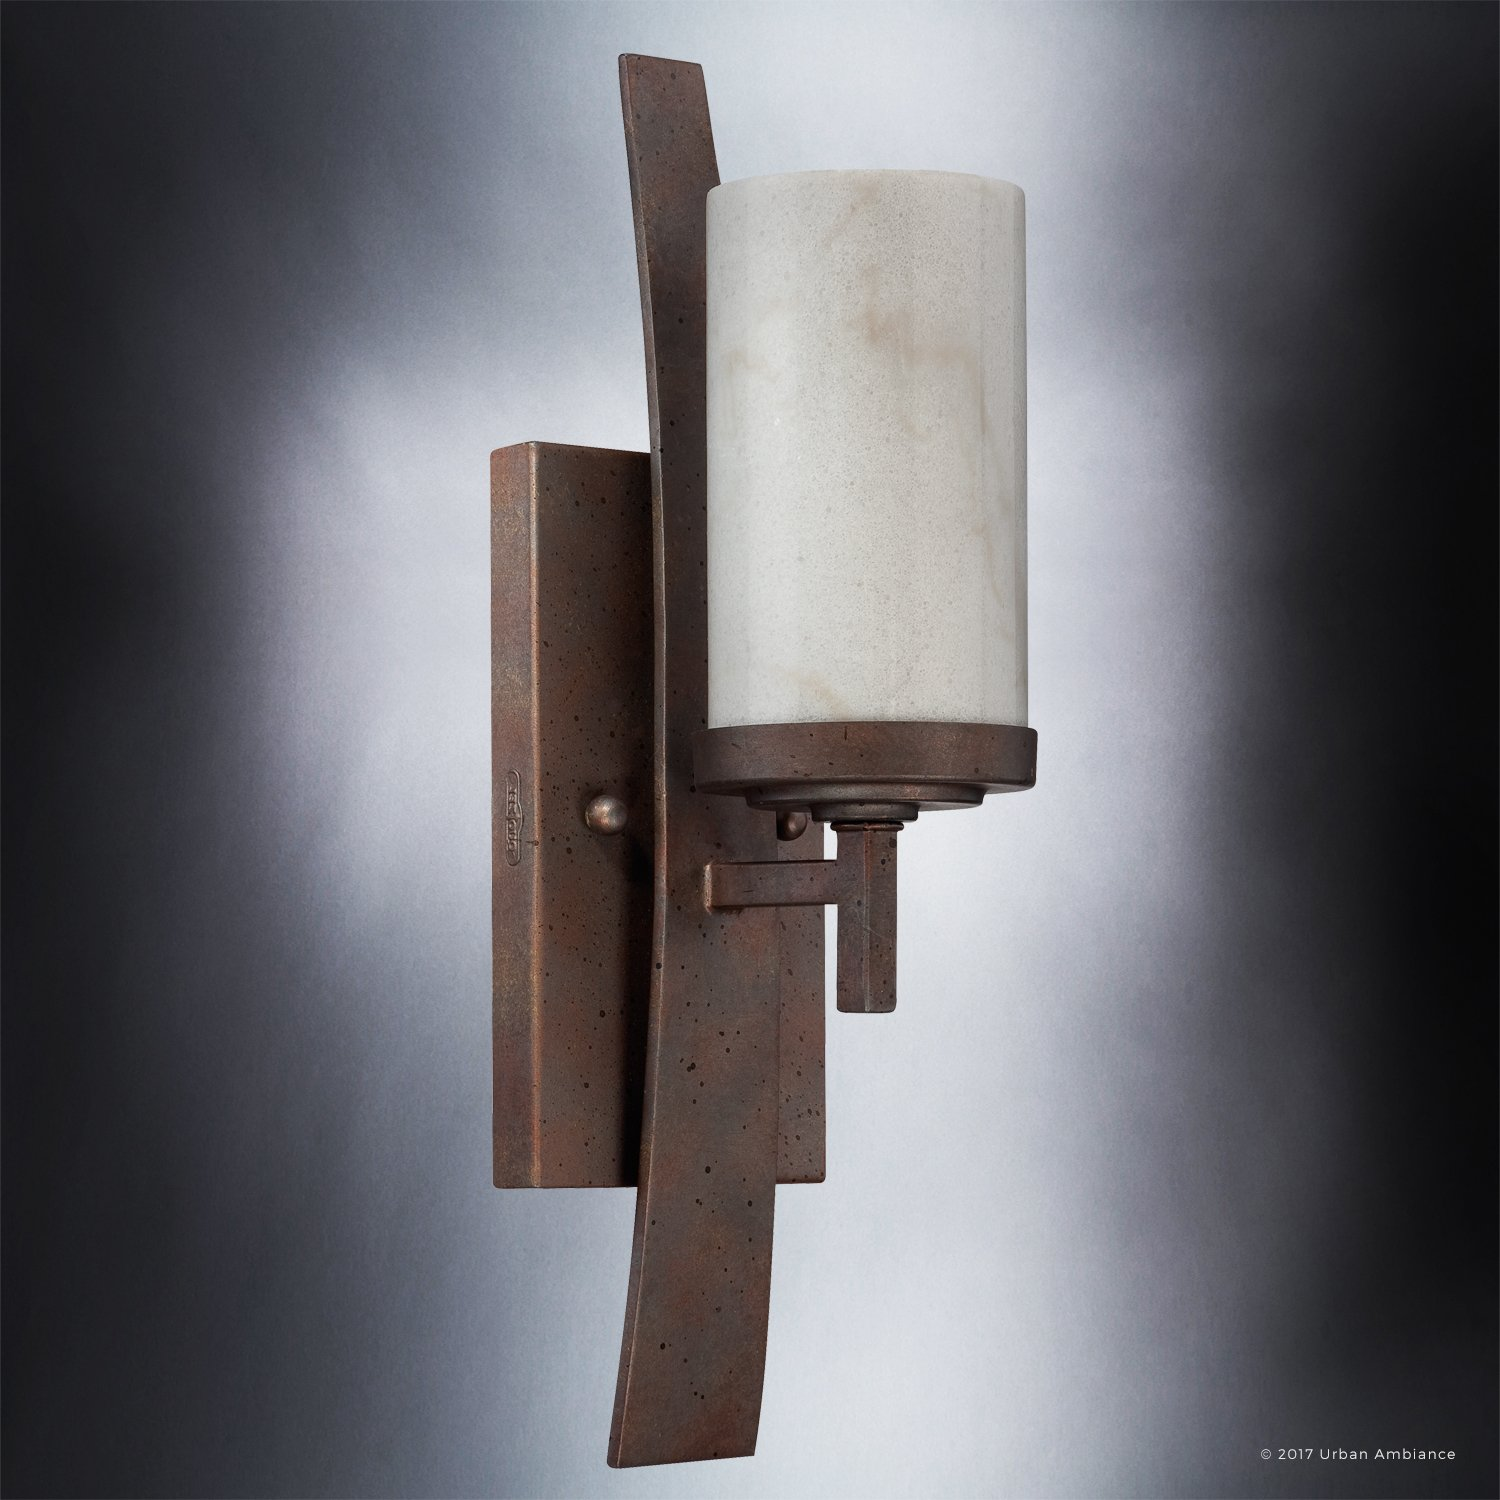 Luxury Rustic Indoor Wall Light, Medium Size: 16''H x 4.5''W, with Craftsman Style Elements, Banded Wrought Iron Design, Forged Iron Finish and White Onyx Stone Shades, UQL2420 by Urban Ambiance by Urban Ambiance (Image #3)